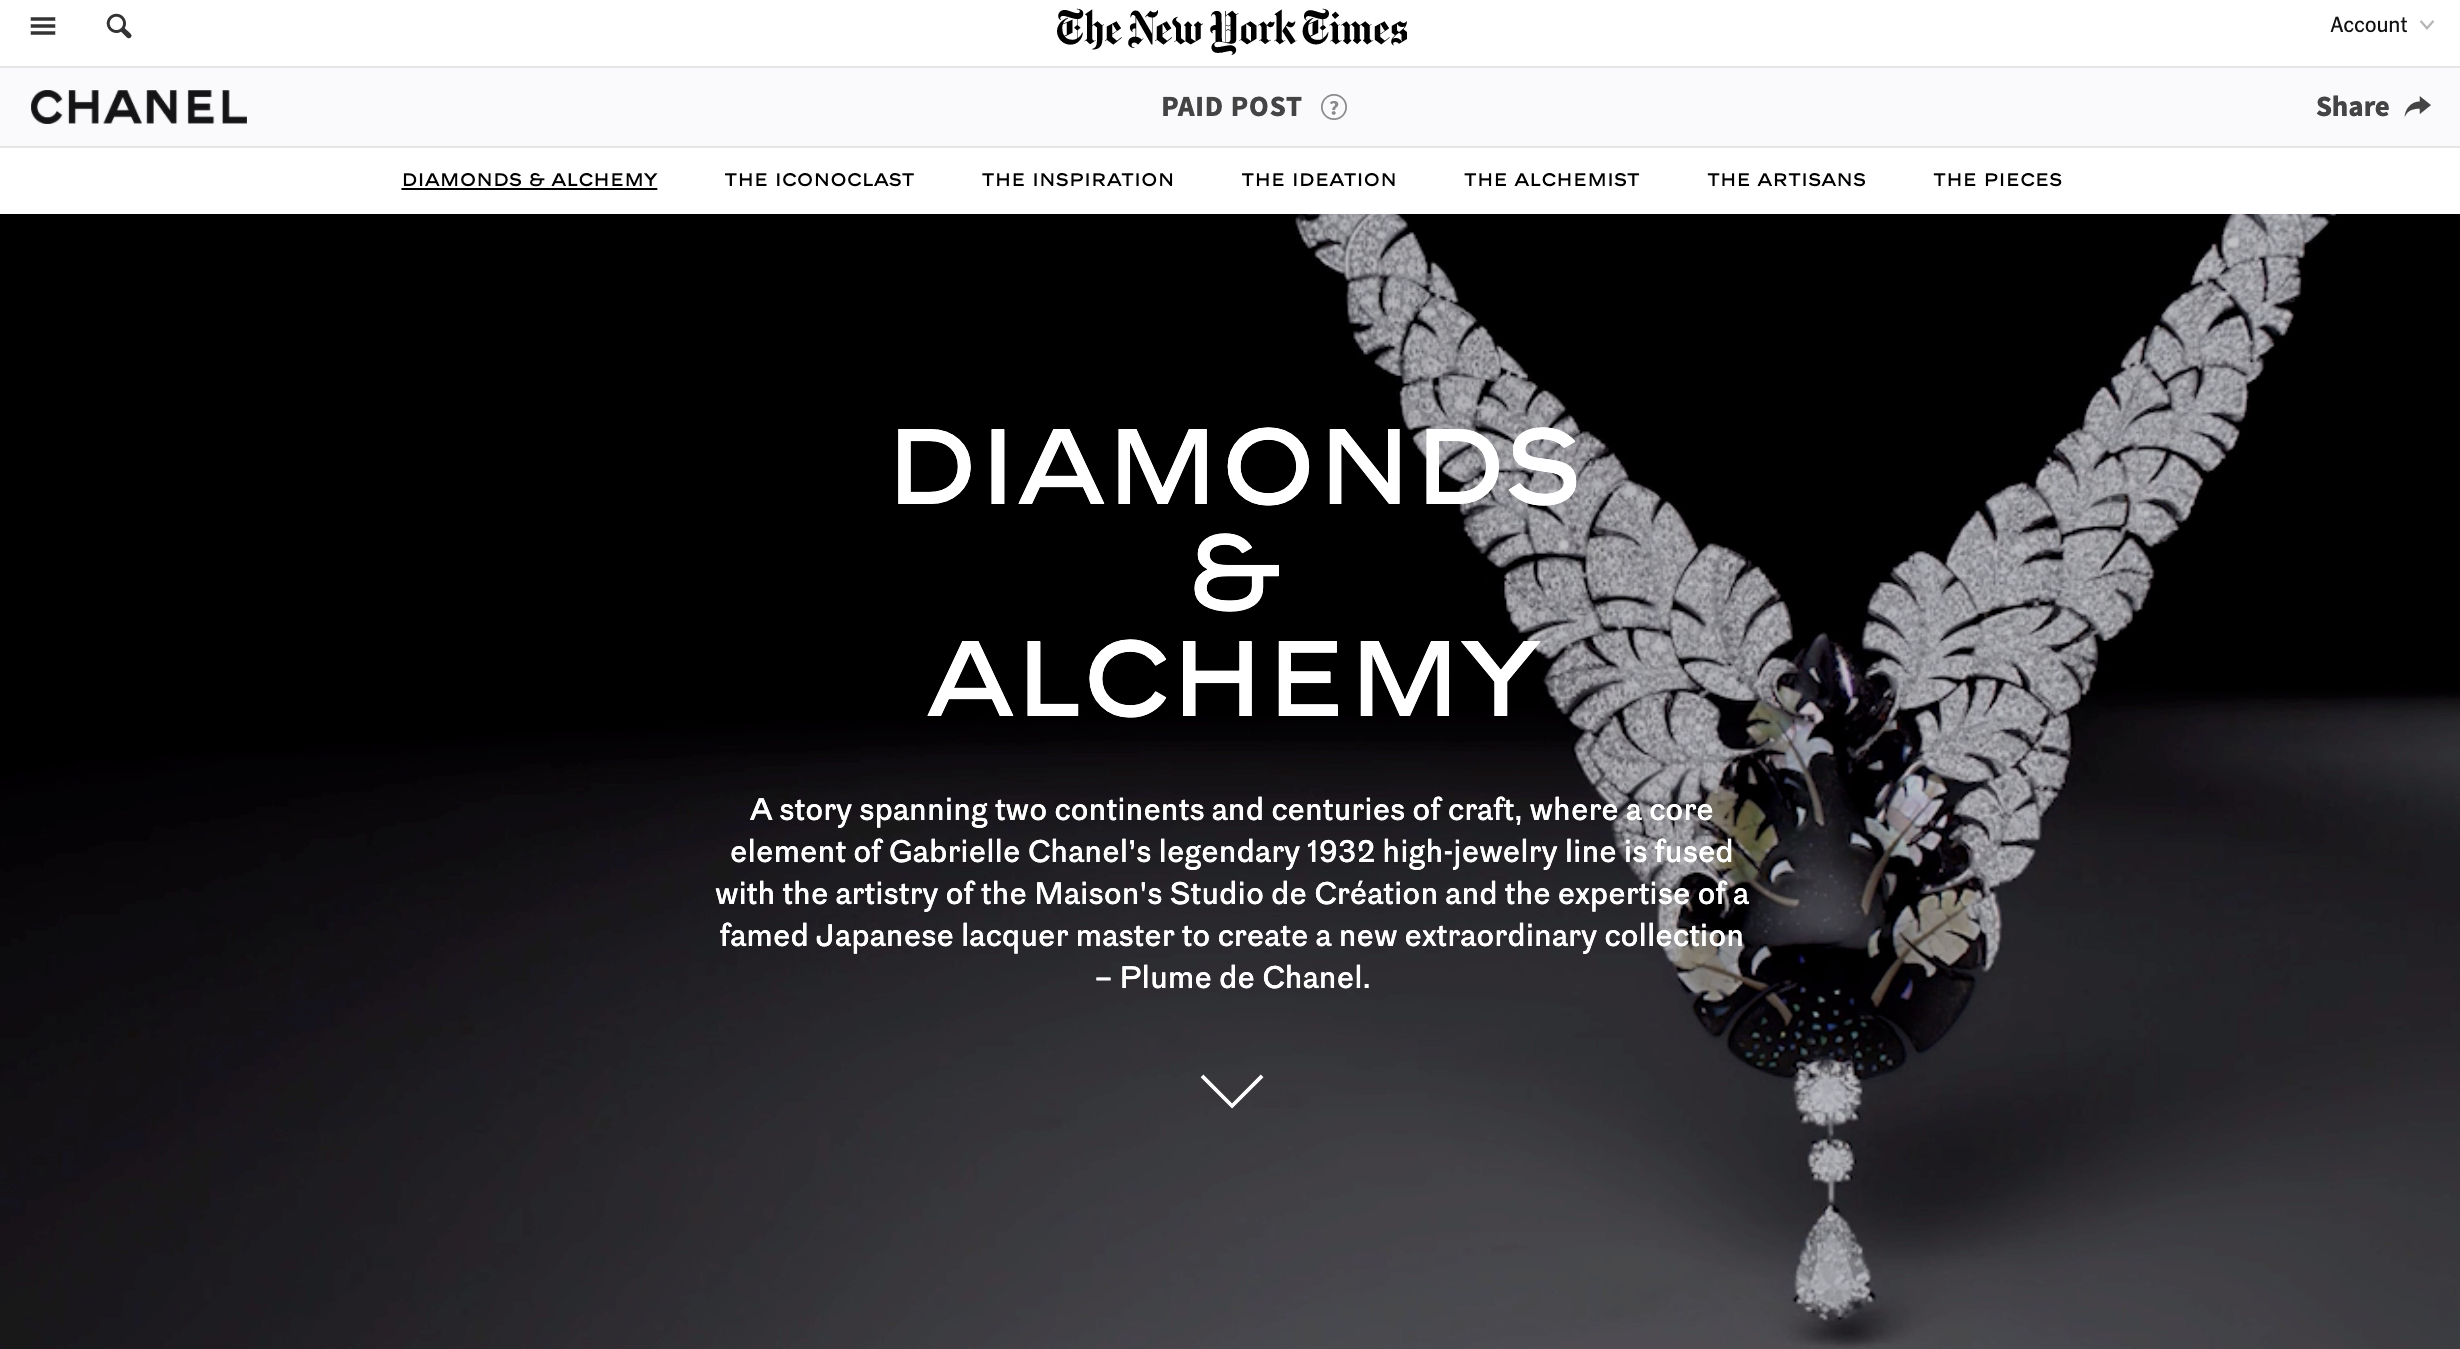 1a-CHANEL-Diamonds-and-Alchemy-Landing-Page-browser-still